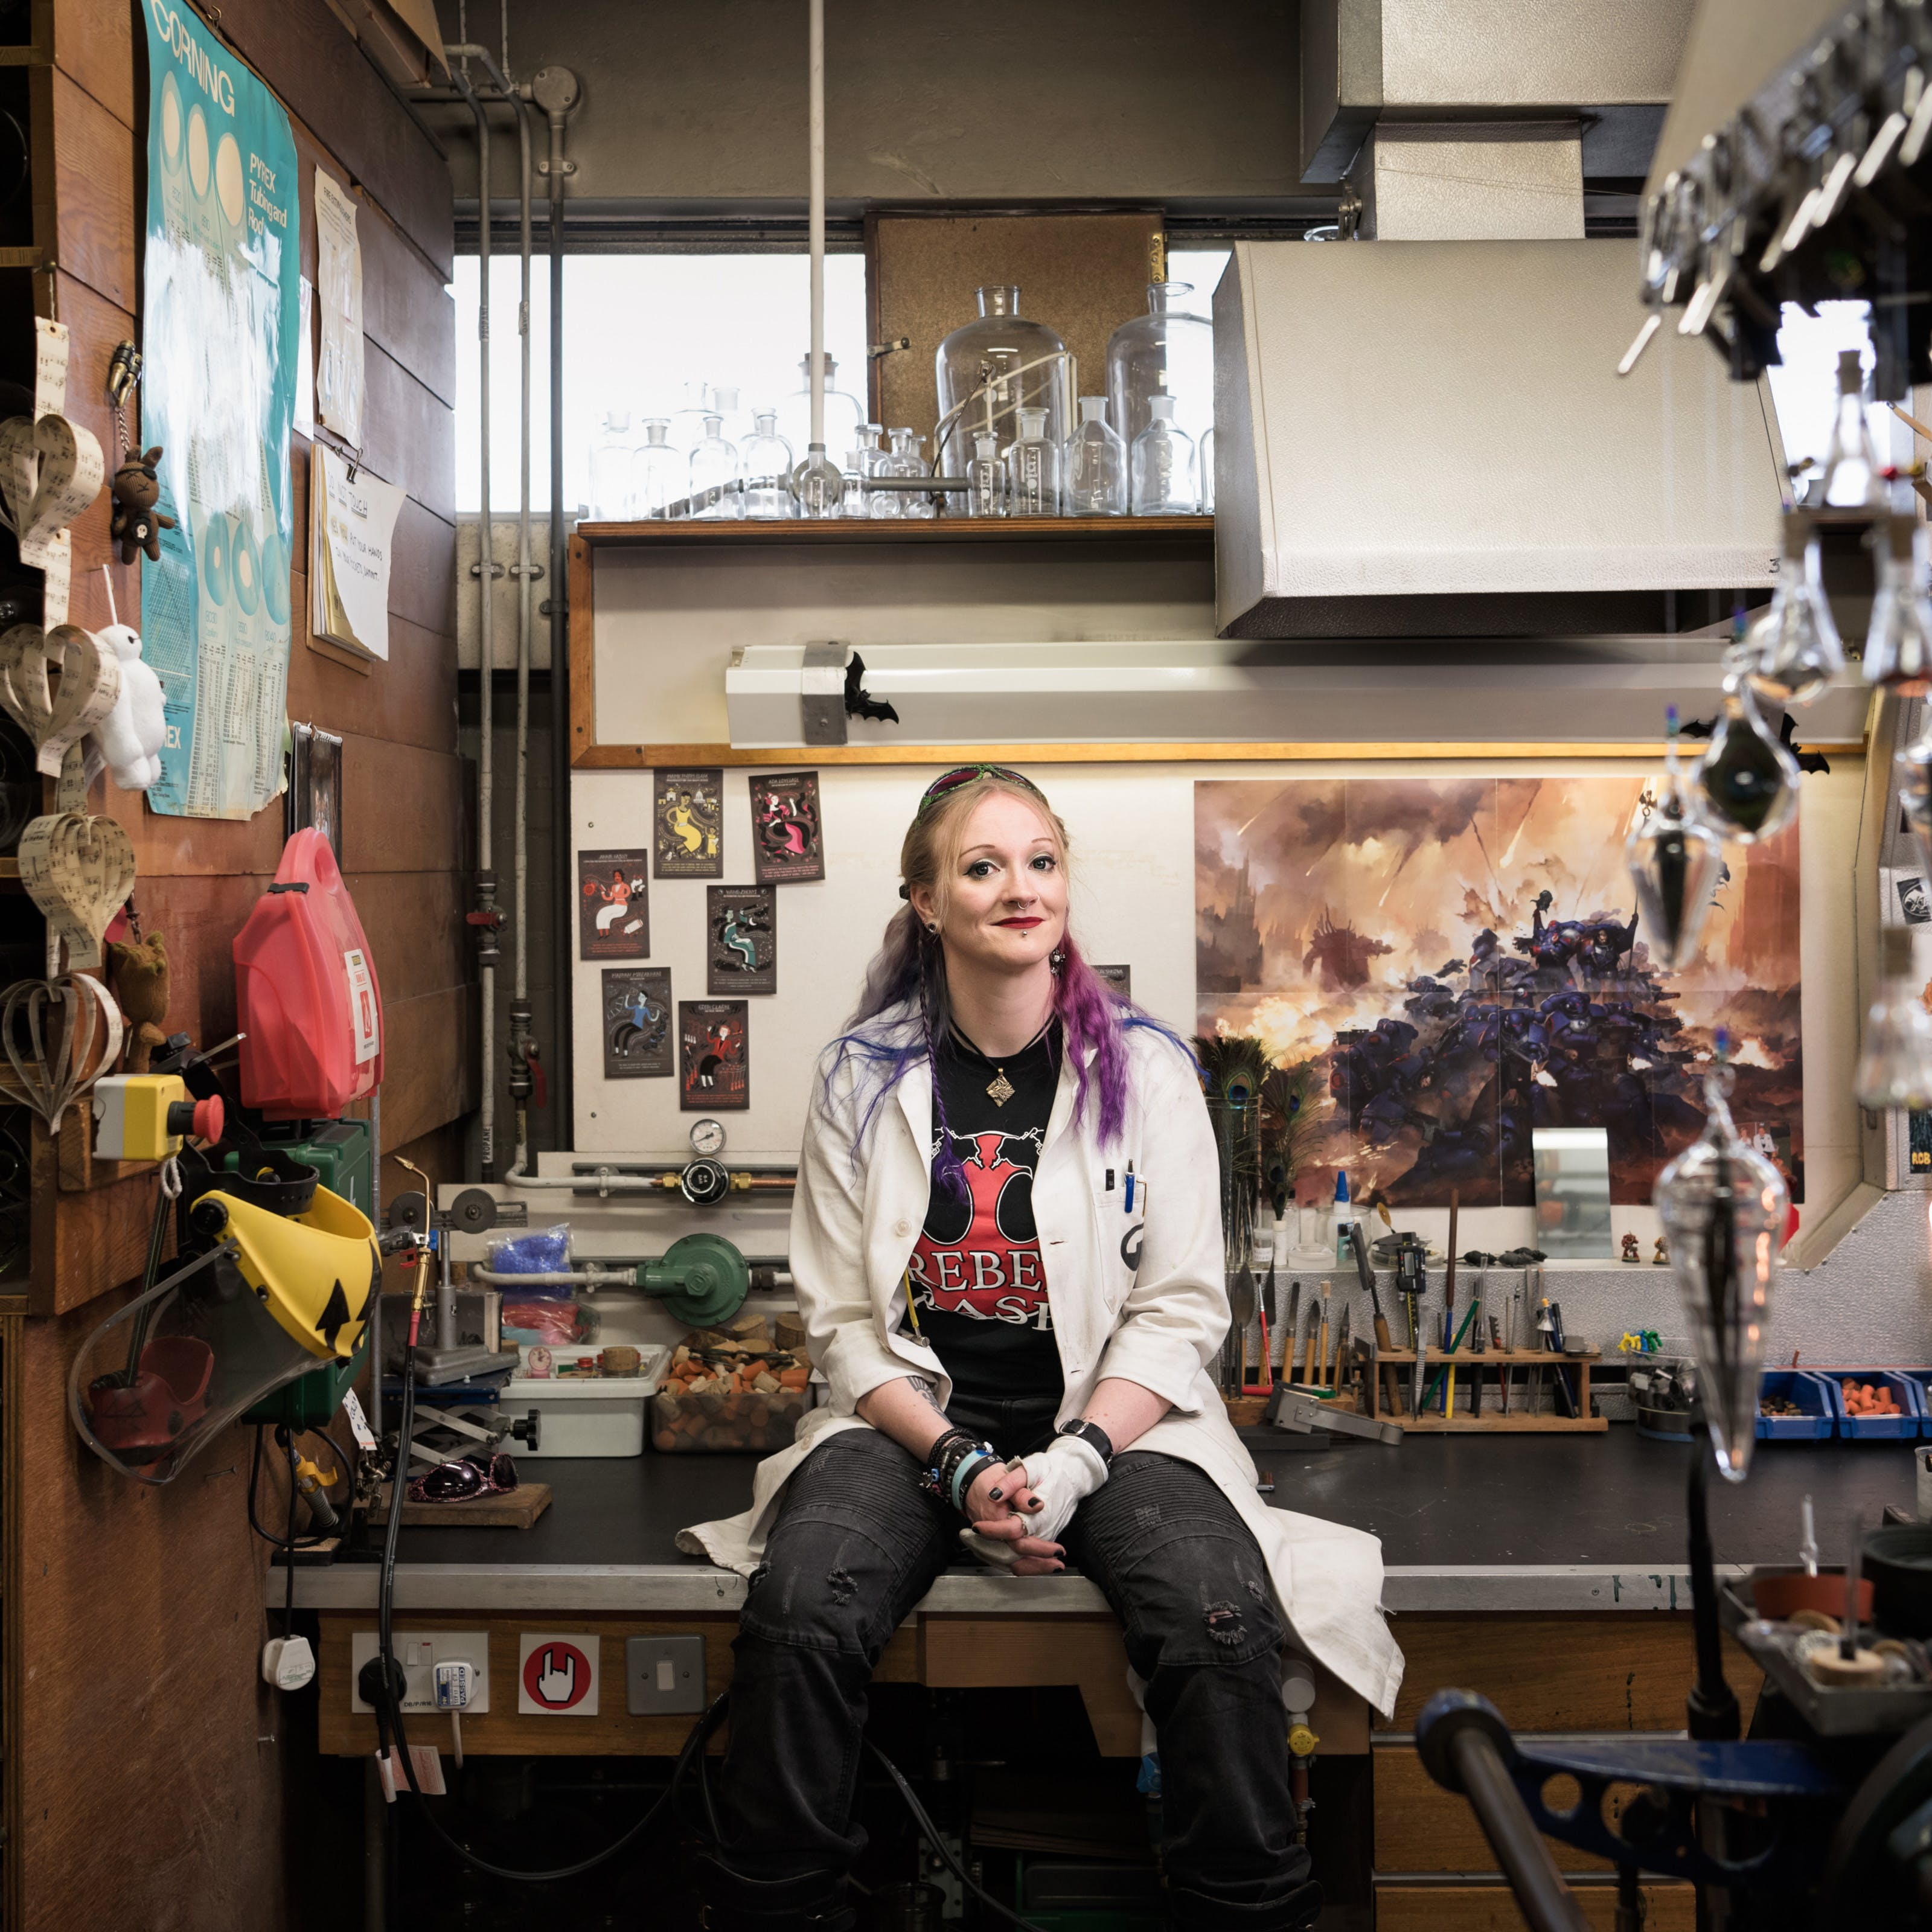 Picture of a woman sitting on a bench in a workshop wearing a white coat, with bright green sunglasses atop her head, blue and purple hair, and a black and red rock-logo t-shirt. Behind her are various glassblowing implements.